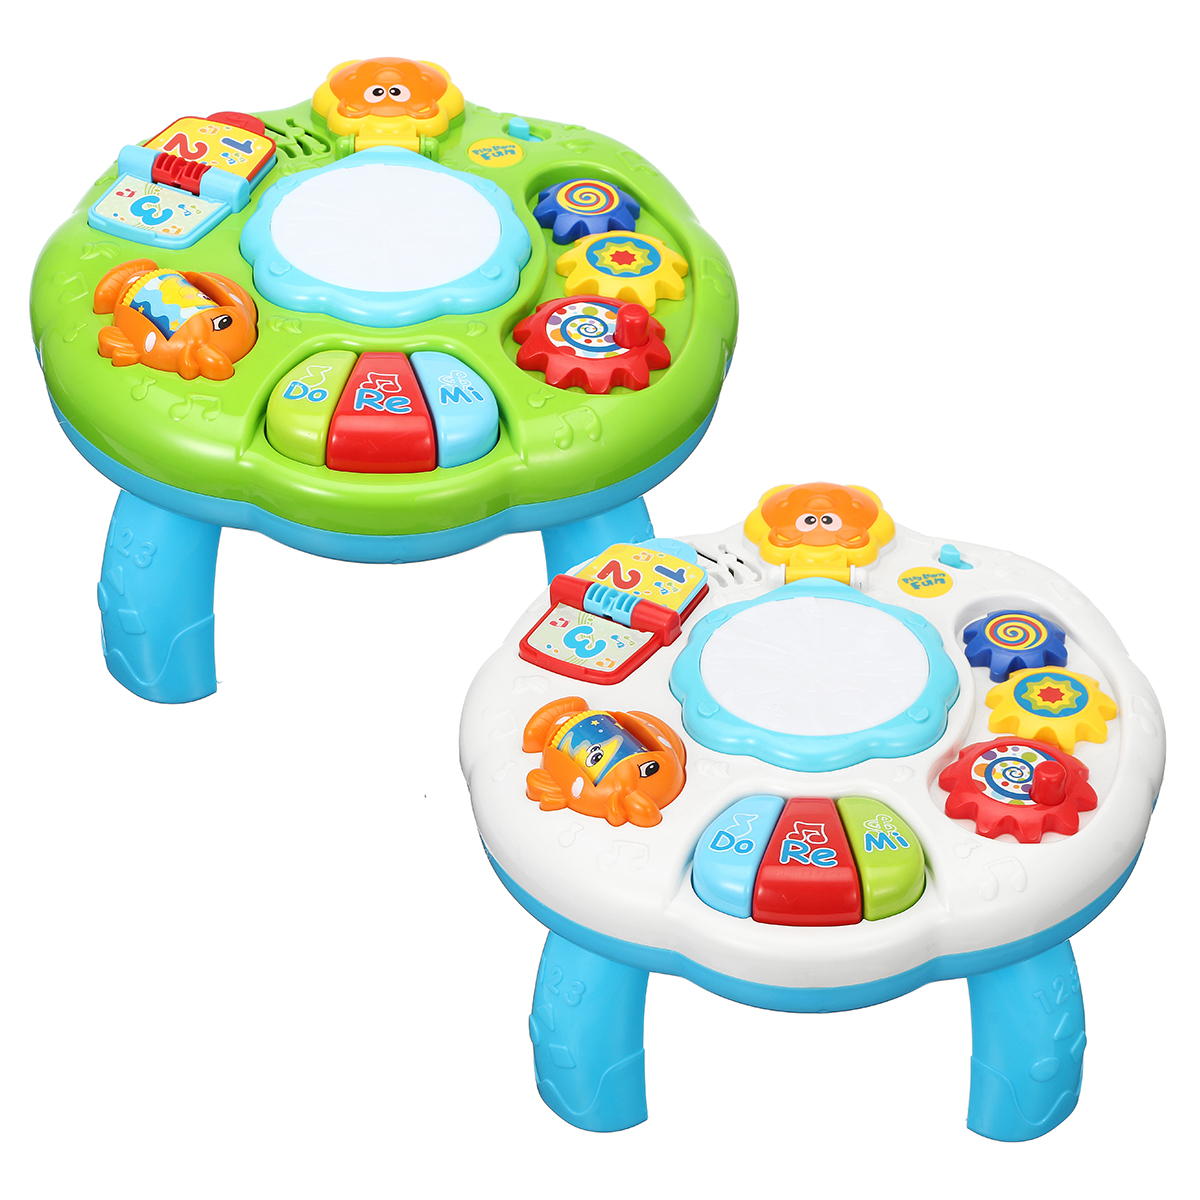 Educational Piano Pat Drum Musical Baby Activity Learning Table Game Playing Toys